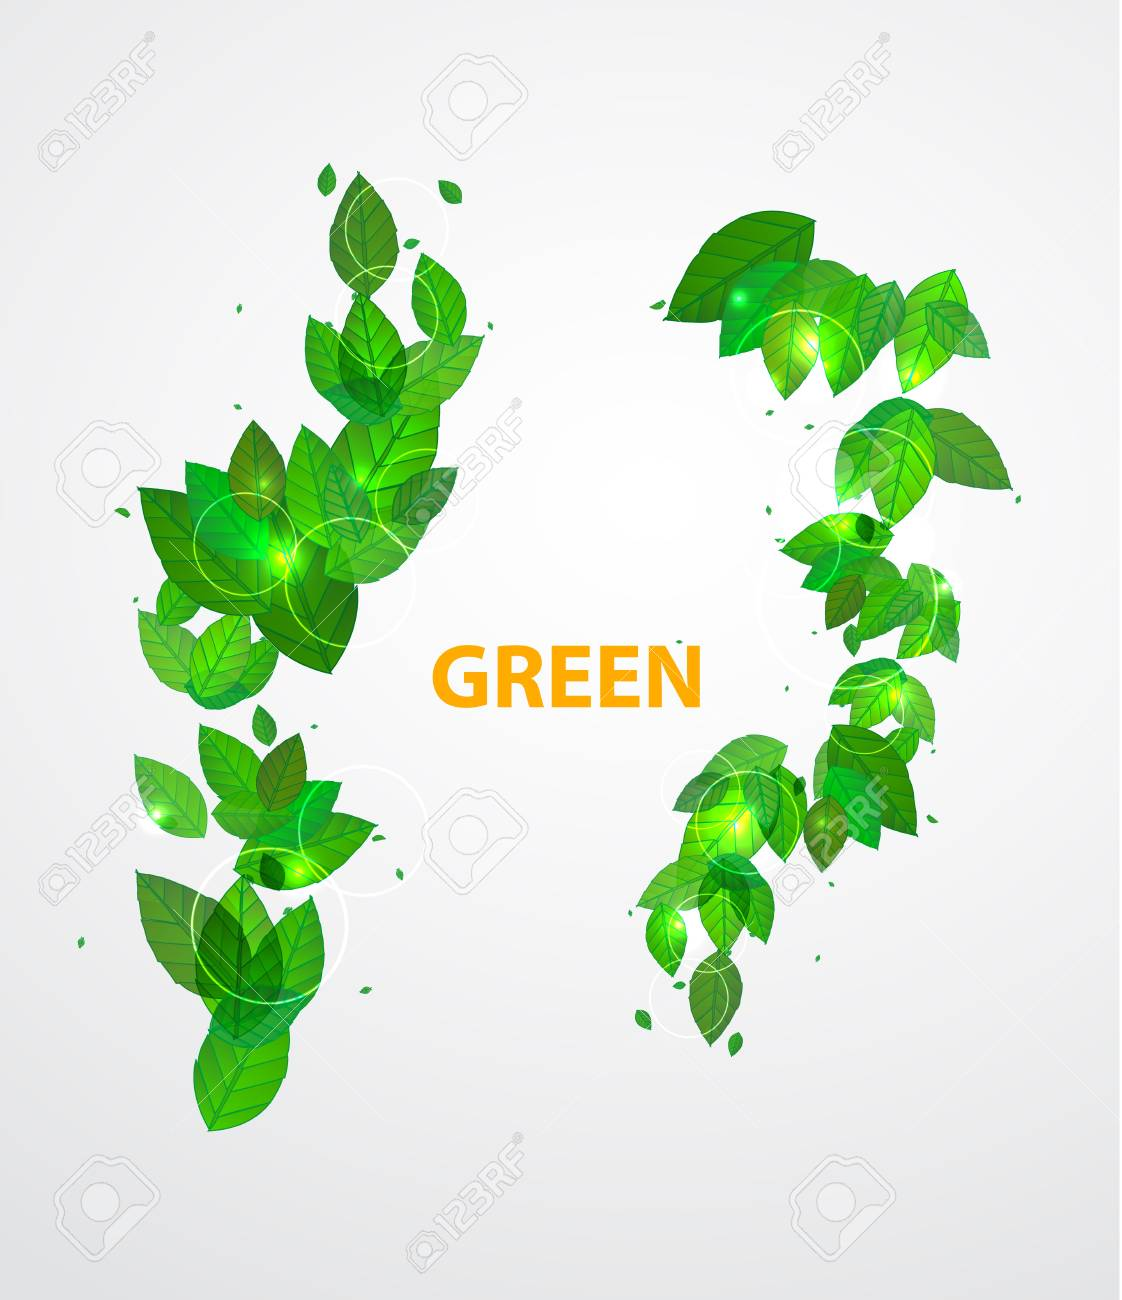 Shiny green leaves background Stock Vector - 17863574